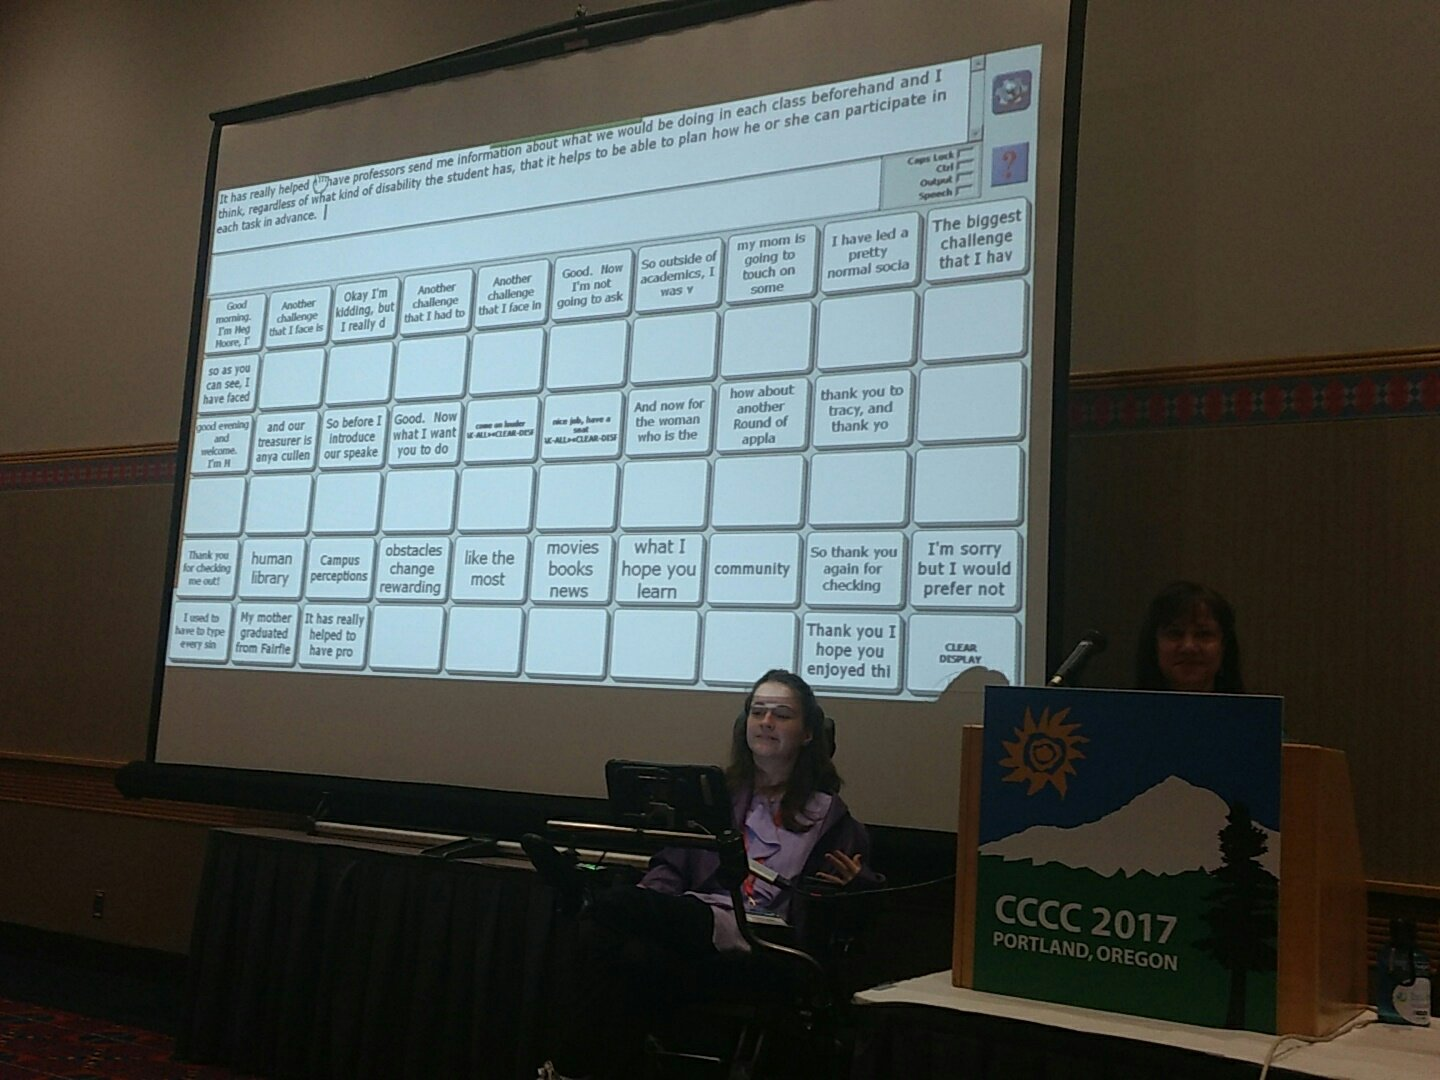 #4c17 #a28 https://t.co/l6MTi2Hhdt